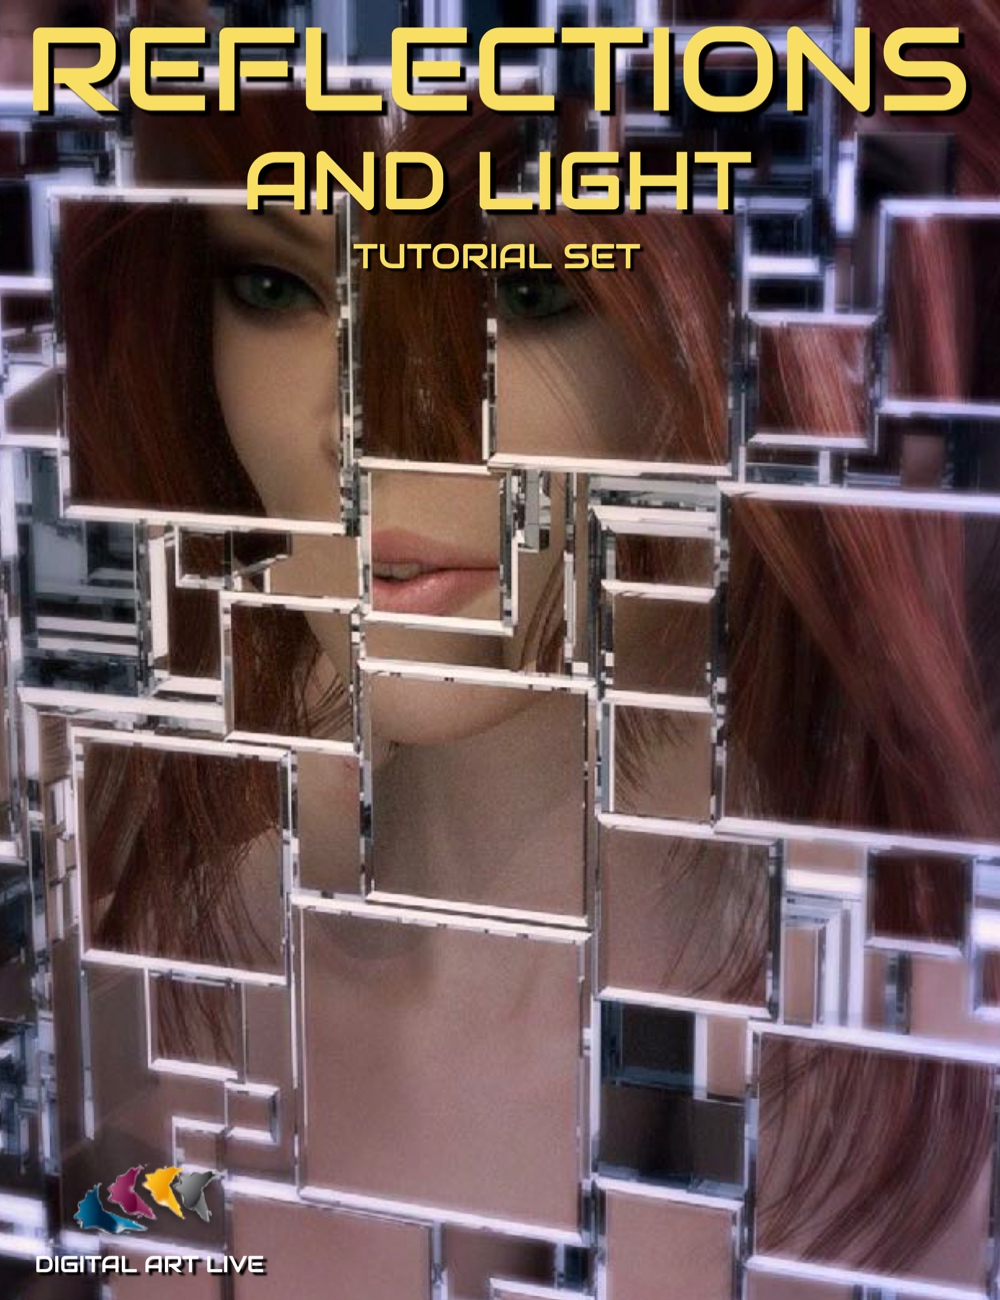 Reflections and Light: Tutorial Set by: Digital Art Live, 3D Models by Daz 3D